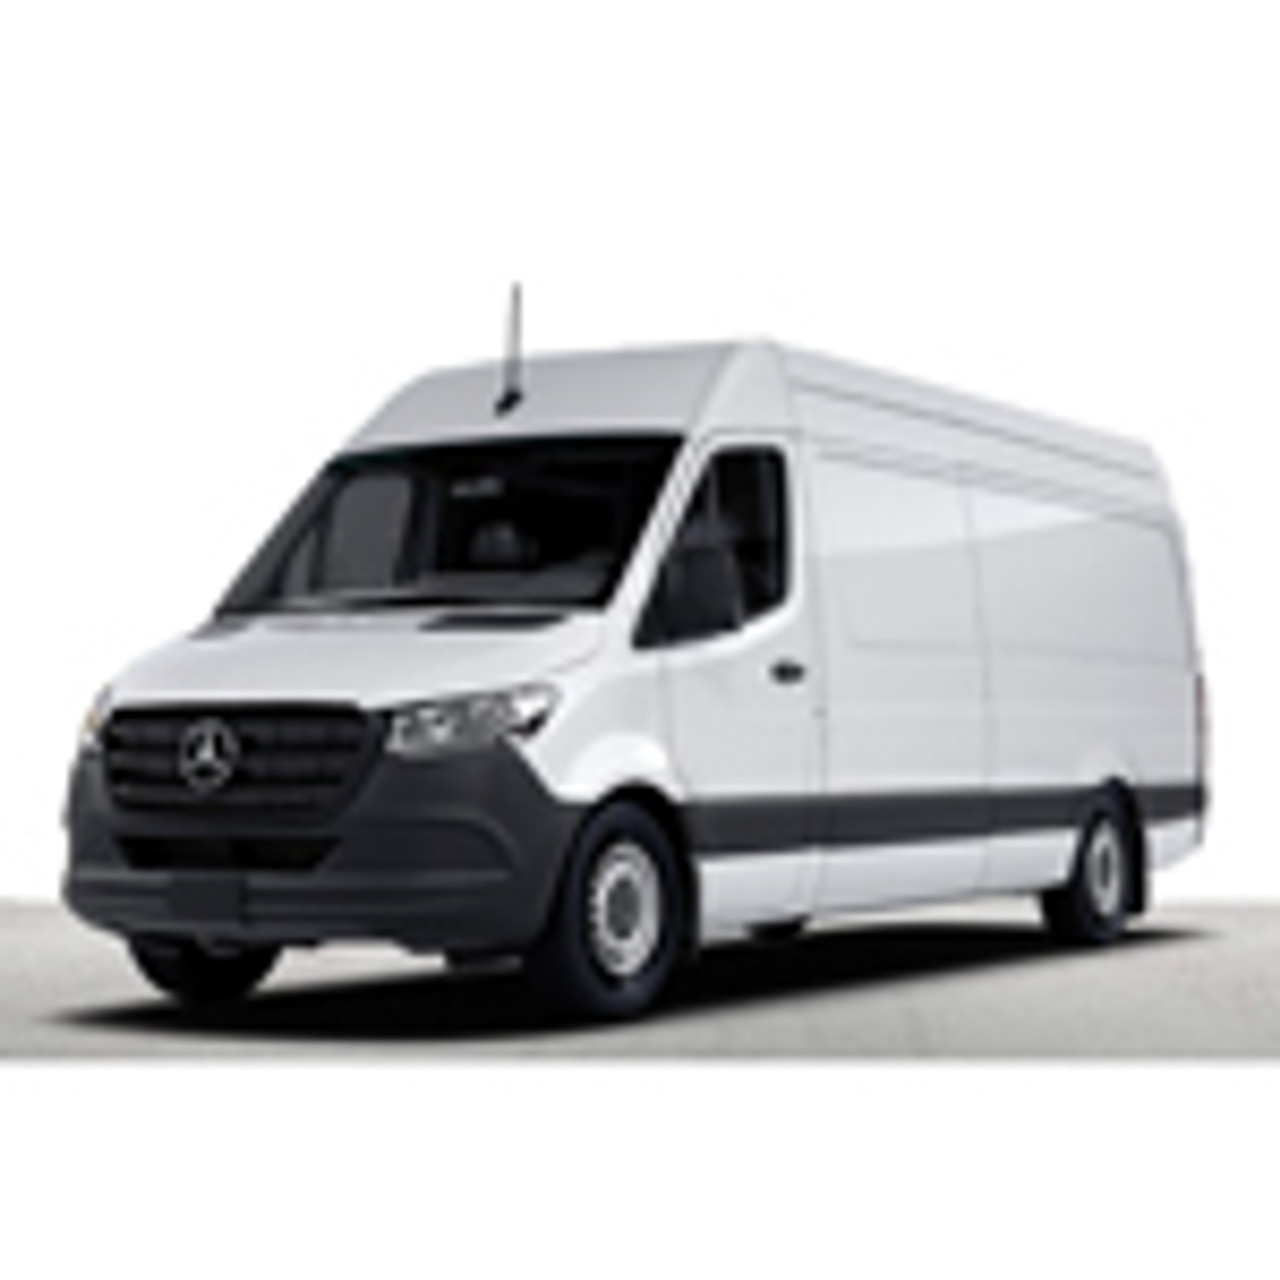 "Sprinter - High Roof / 170"" Extended Wheelbase"